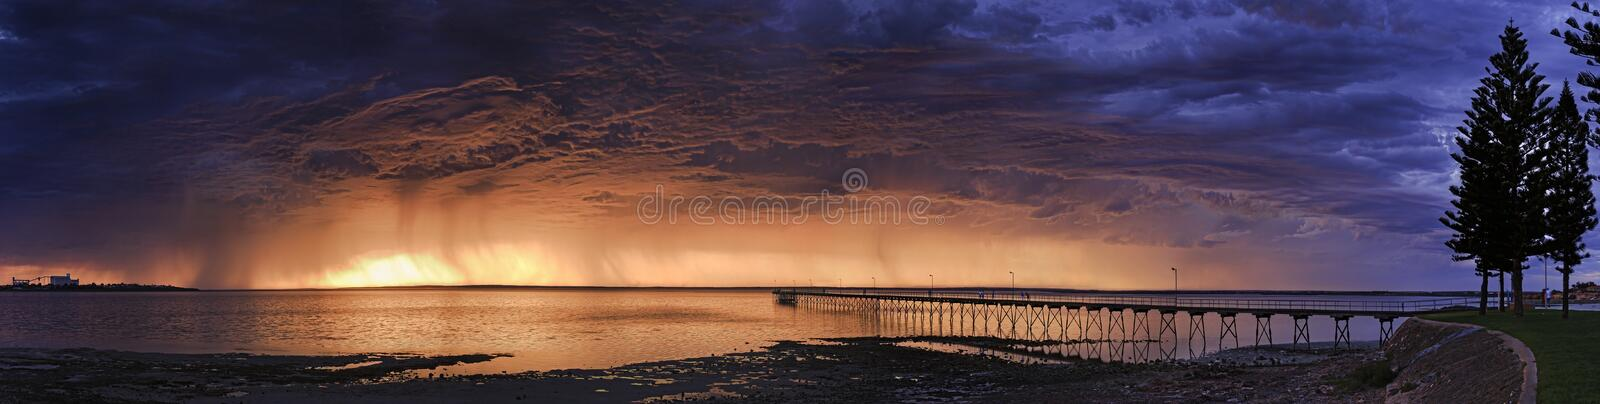 SA Sea Ceduna Bay Jetty Right. Wide sunset panorama of sun touching horizon over Great Australian bight during sea storm under heavy clouds as seen from Ceduna stock photography